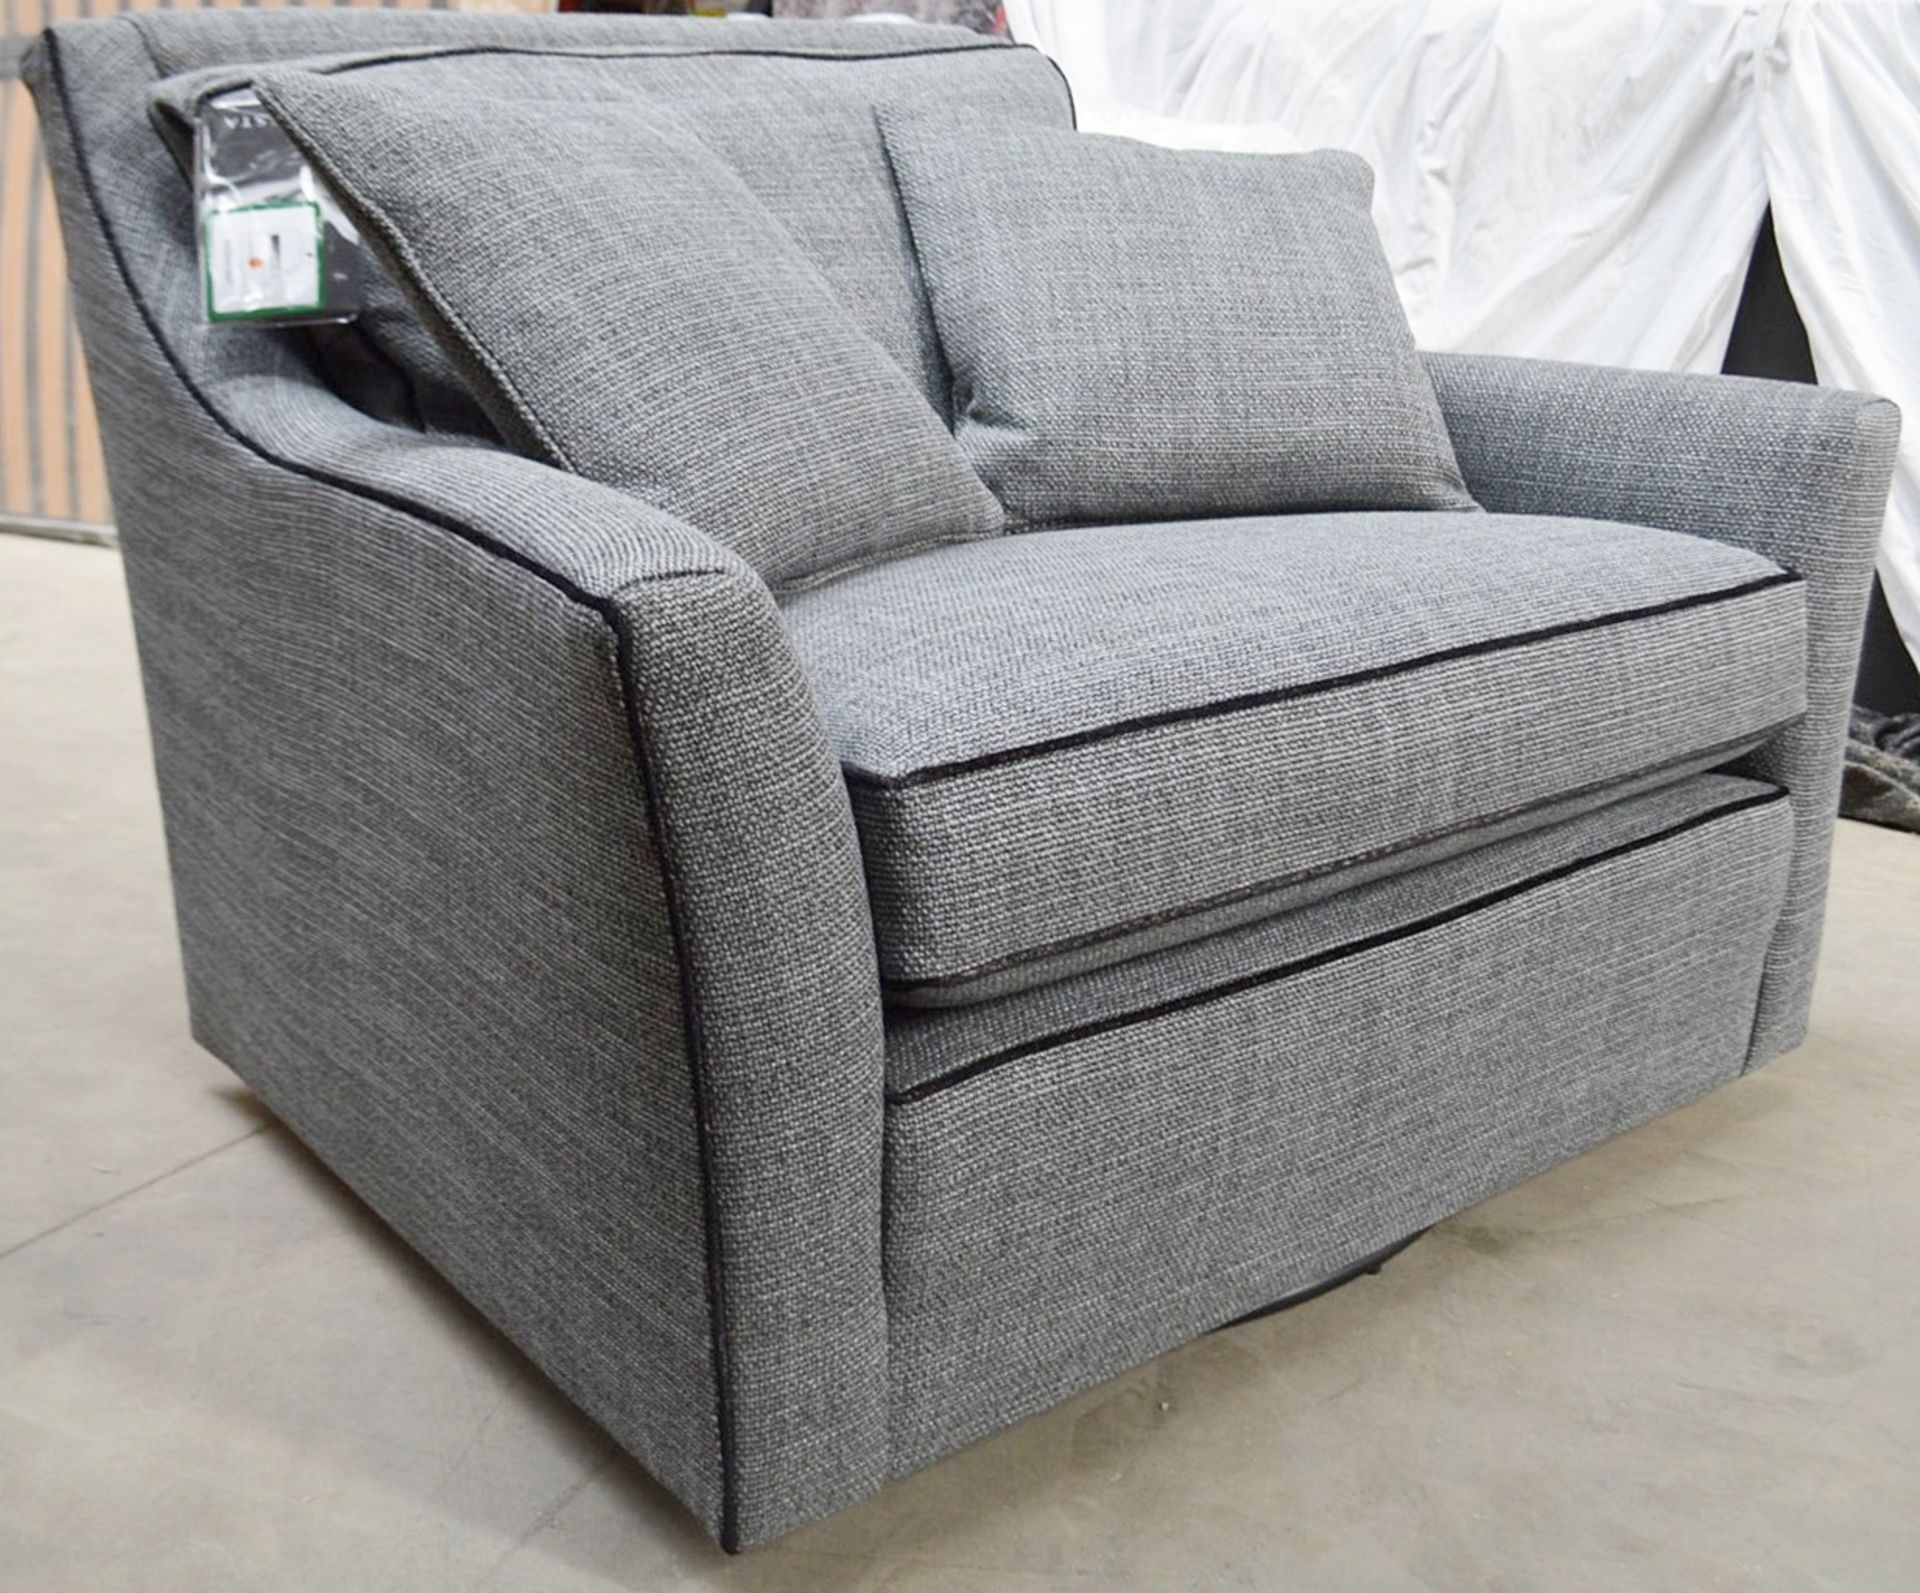 1 x DURESTA Hermitage Swivel Chair Upholstered In A Light Grey Premium Woven Fabric - RRP £3,729 - Image 5 of 7